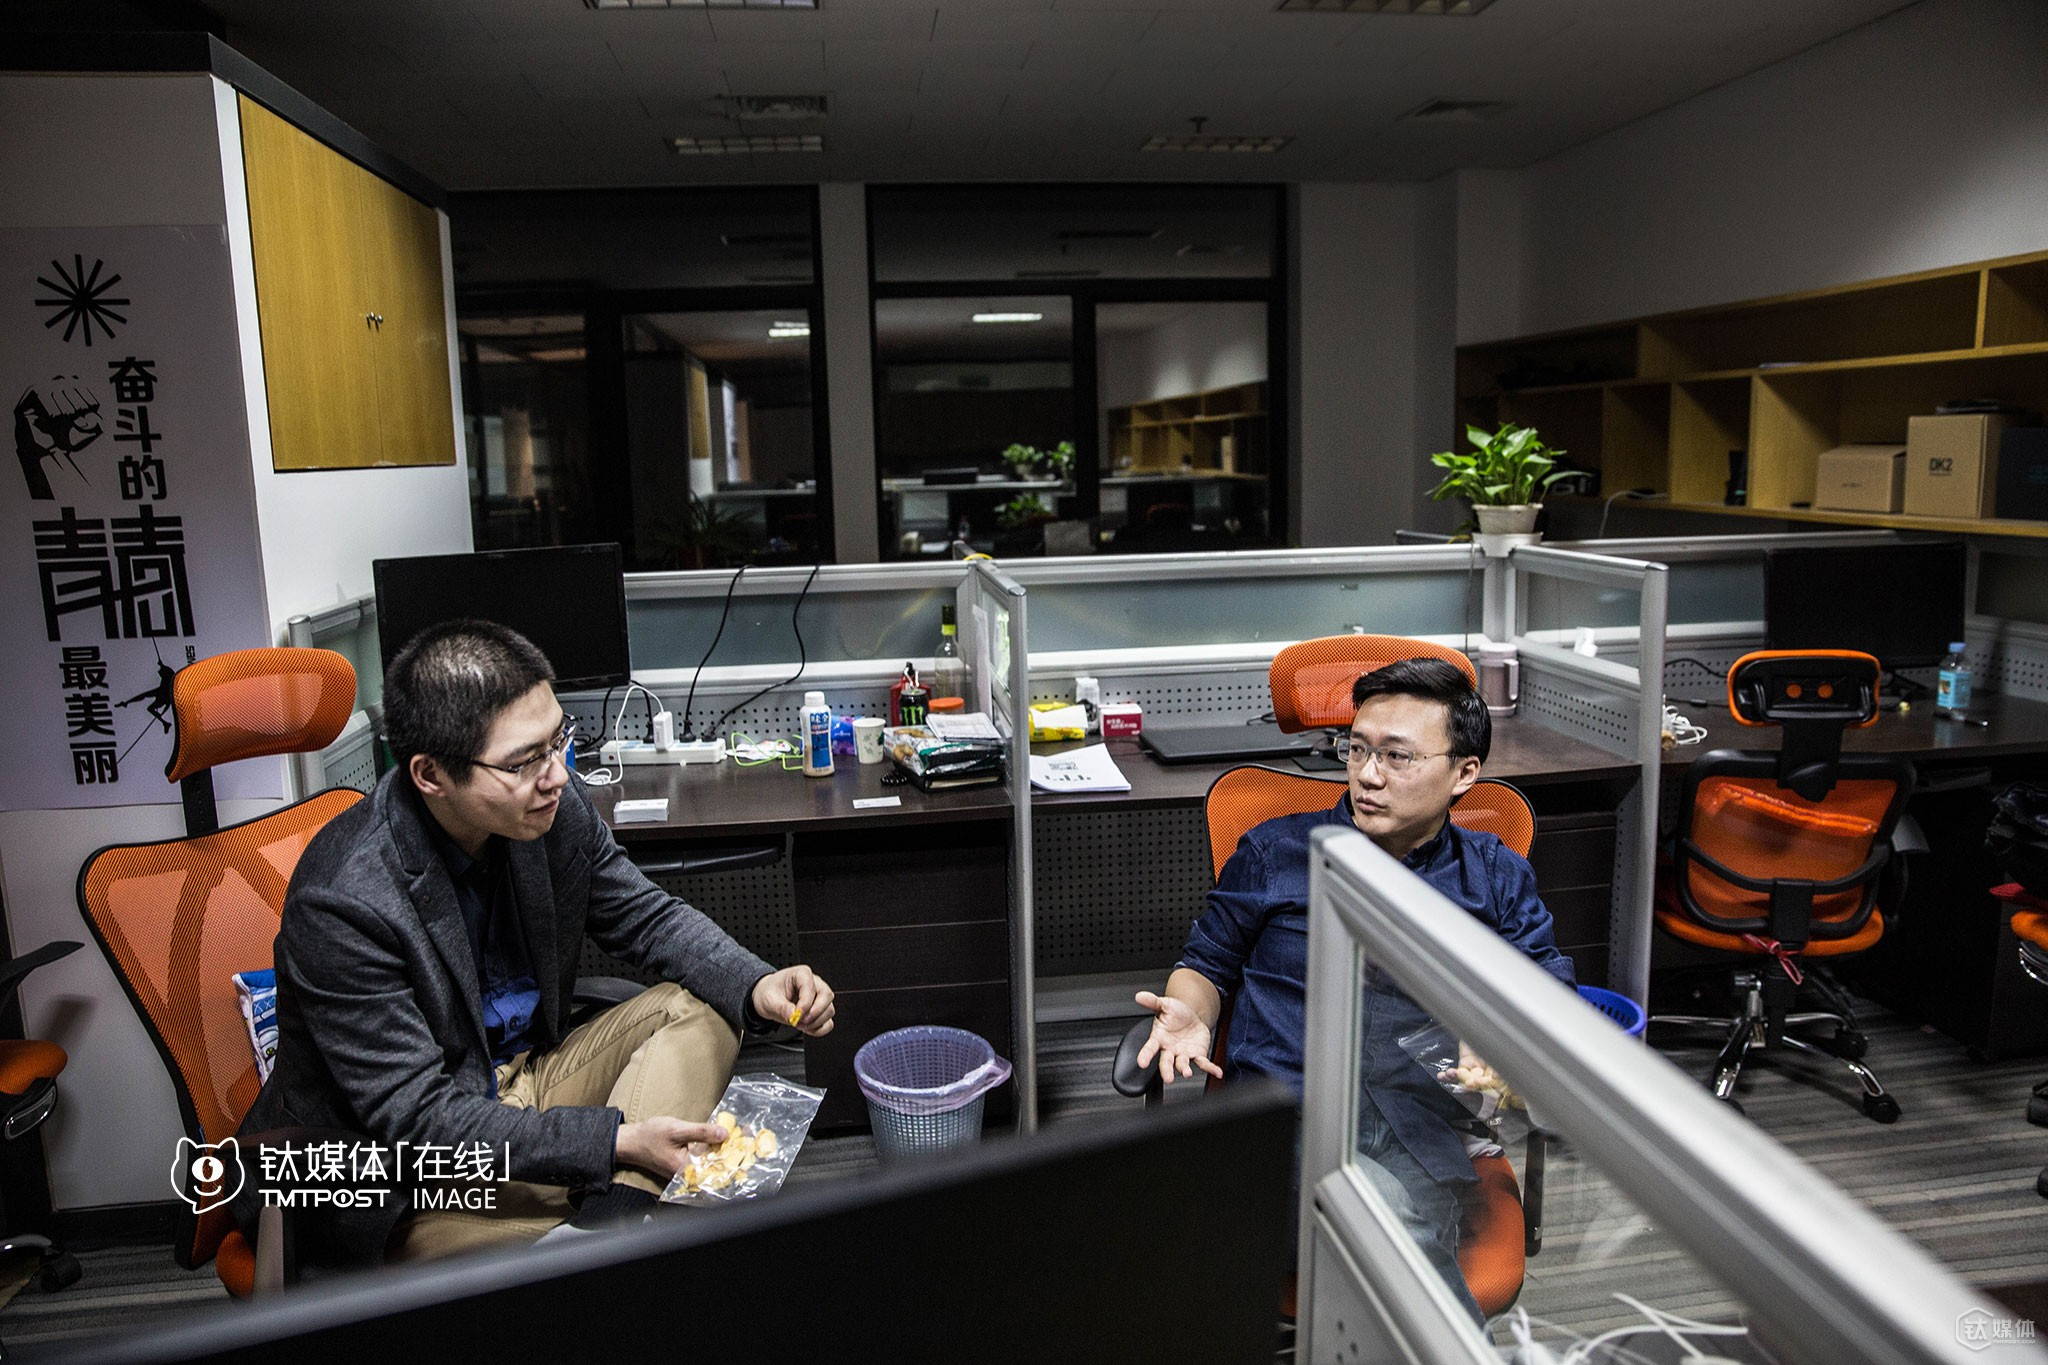 Before leaving the office, Mr. Wu and Mr. Zhong had a swift discussion over recruiting.